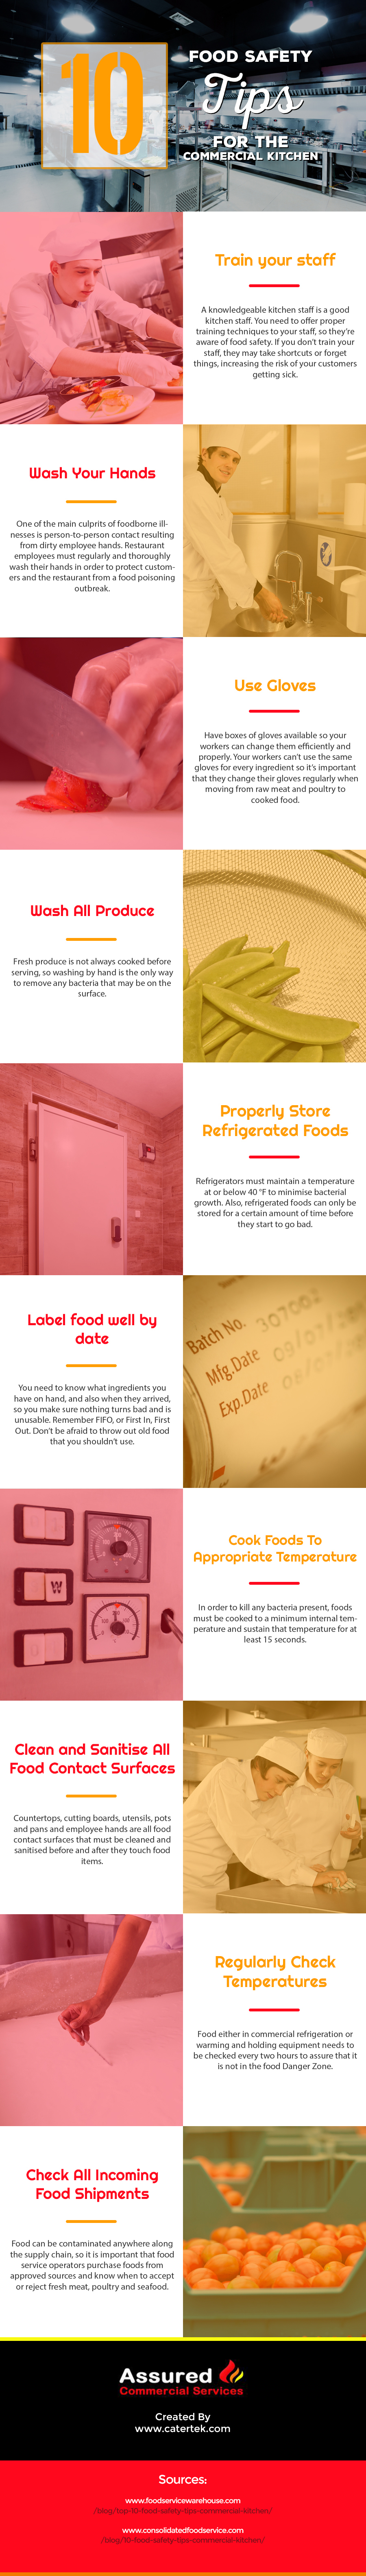 10 Food Safety Tips for the Commercial Kitchen - Red